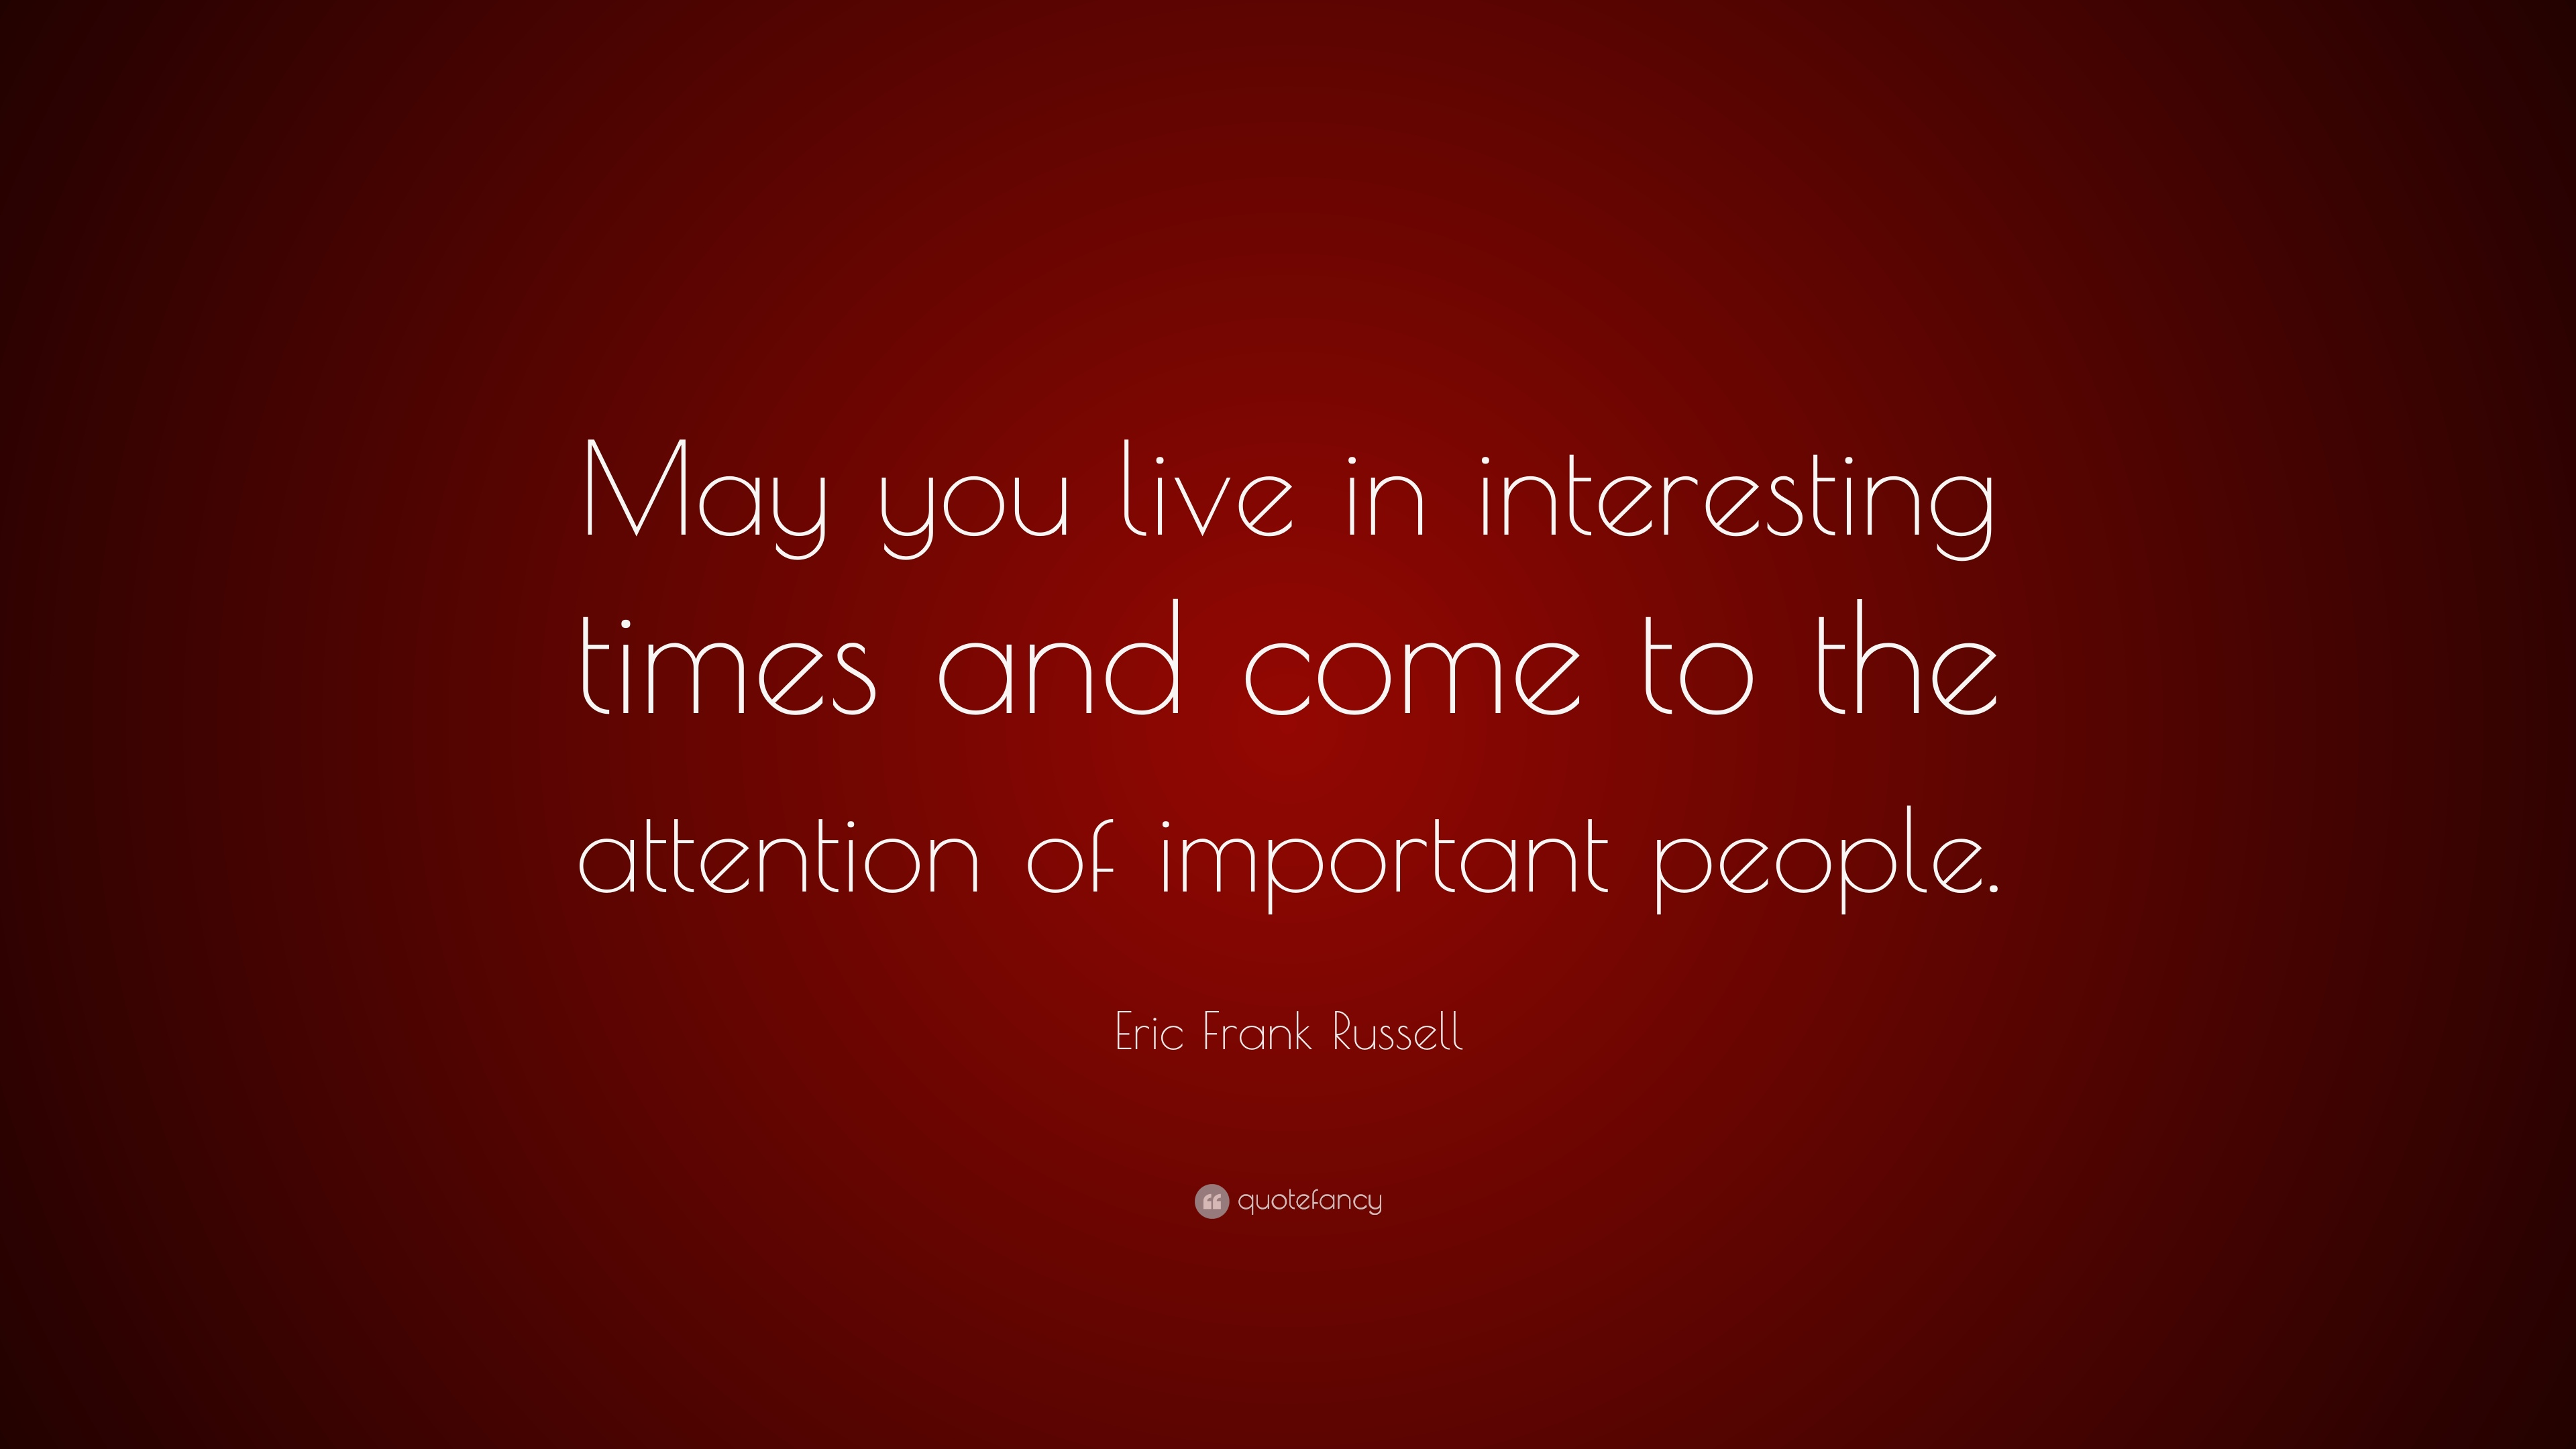 eric frank russell quote u201cmay you live in interesting times and rh quotefancy com may you live in interesting times snopes may you live in interesting times meaning